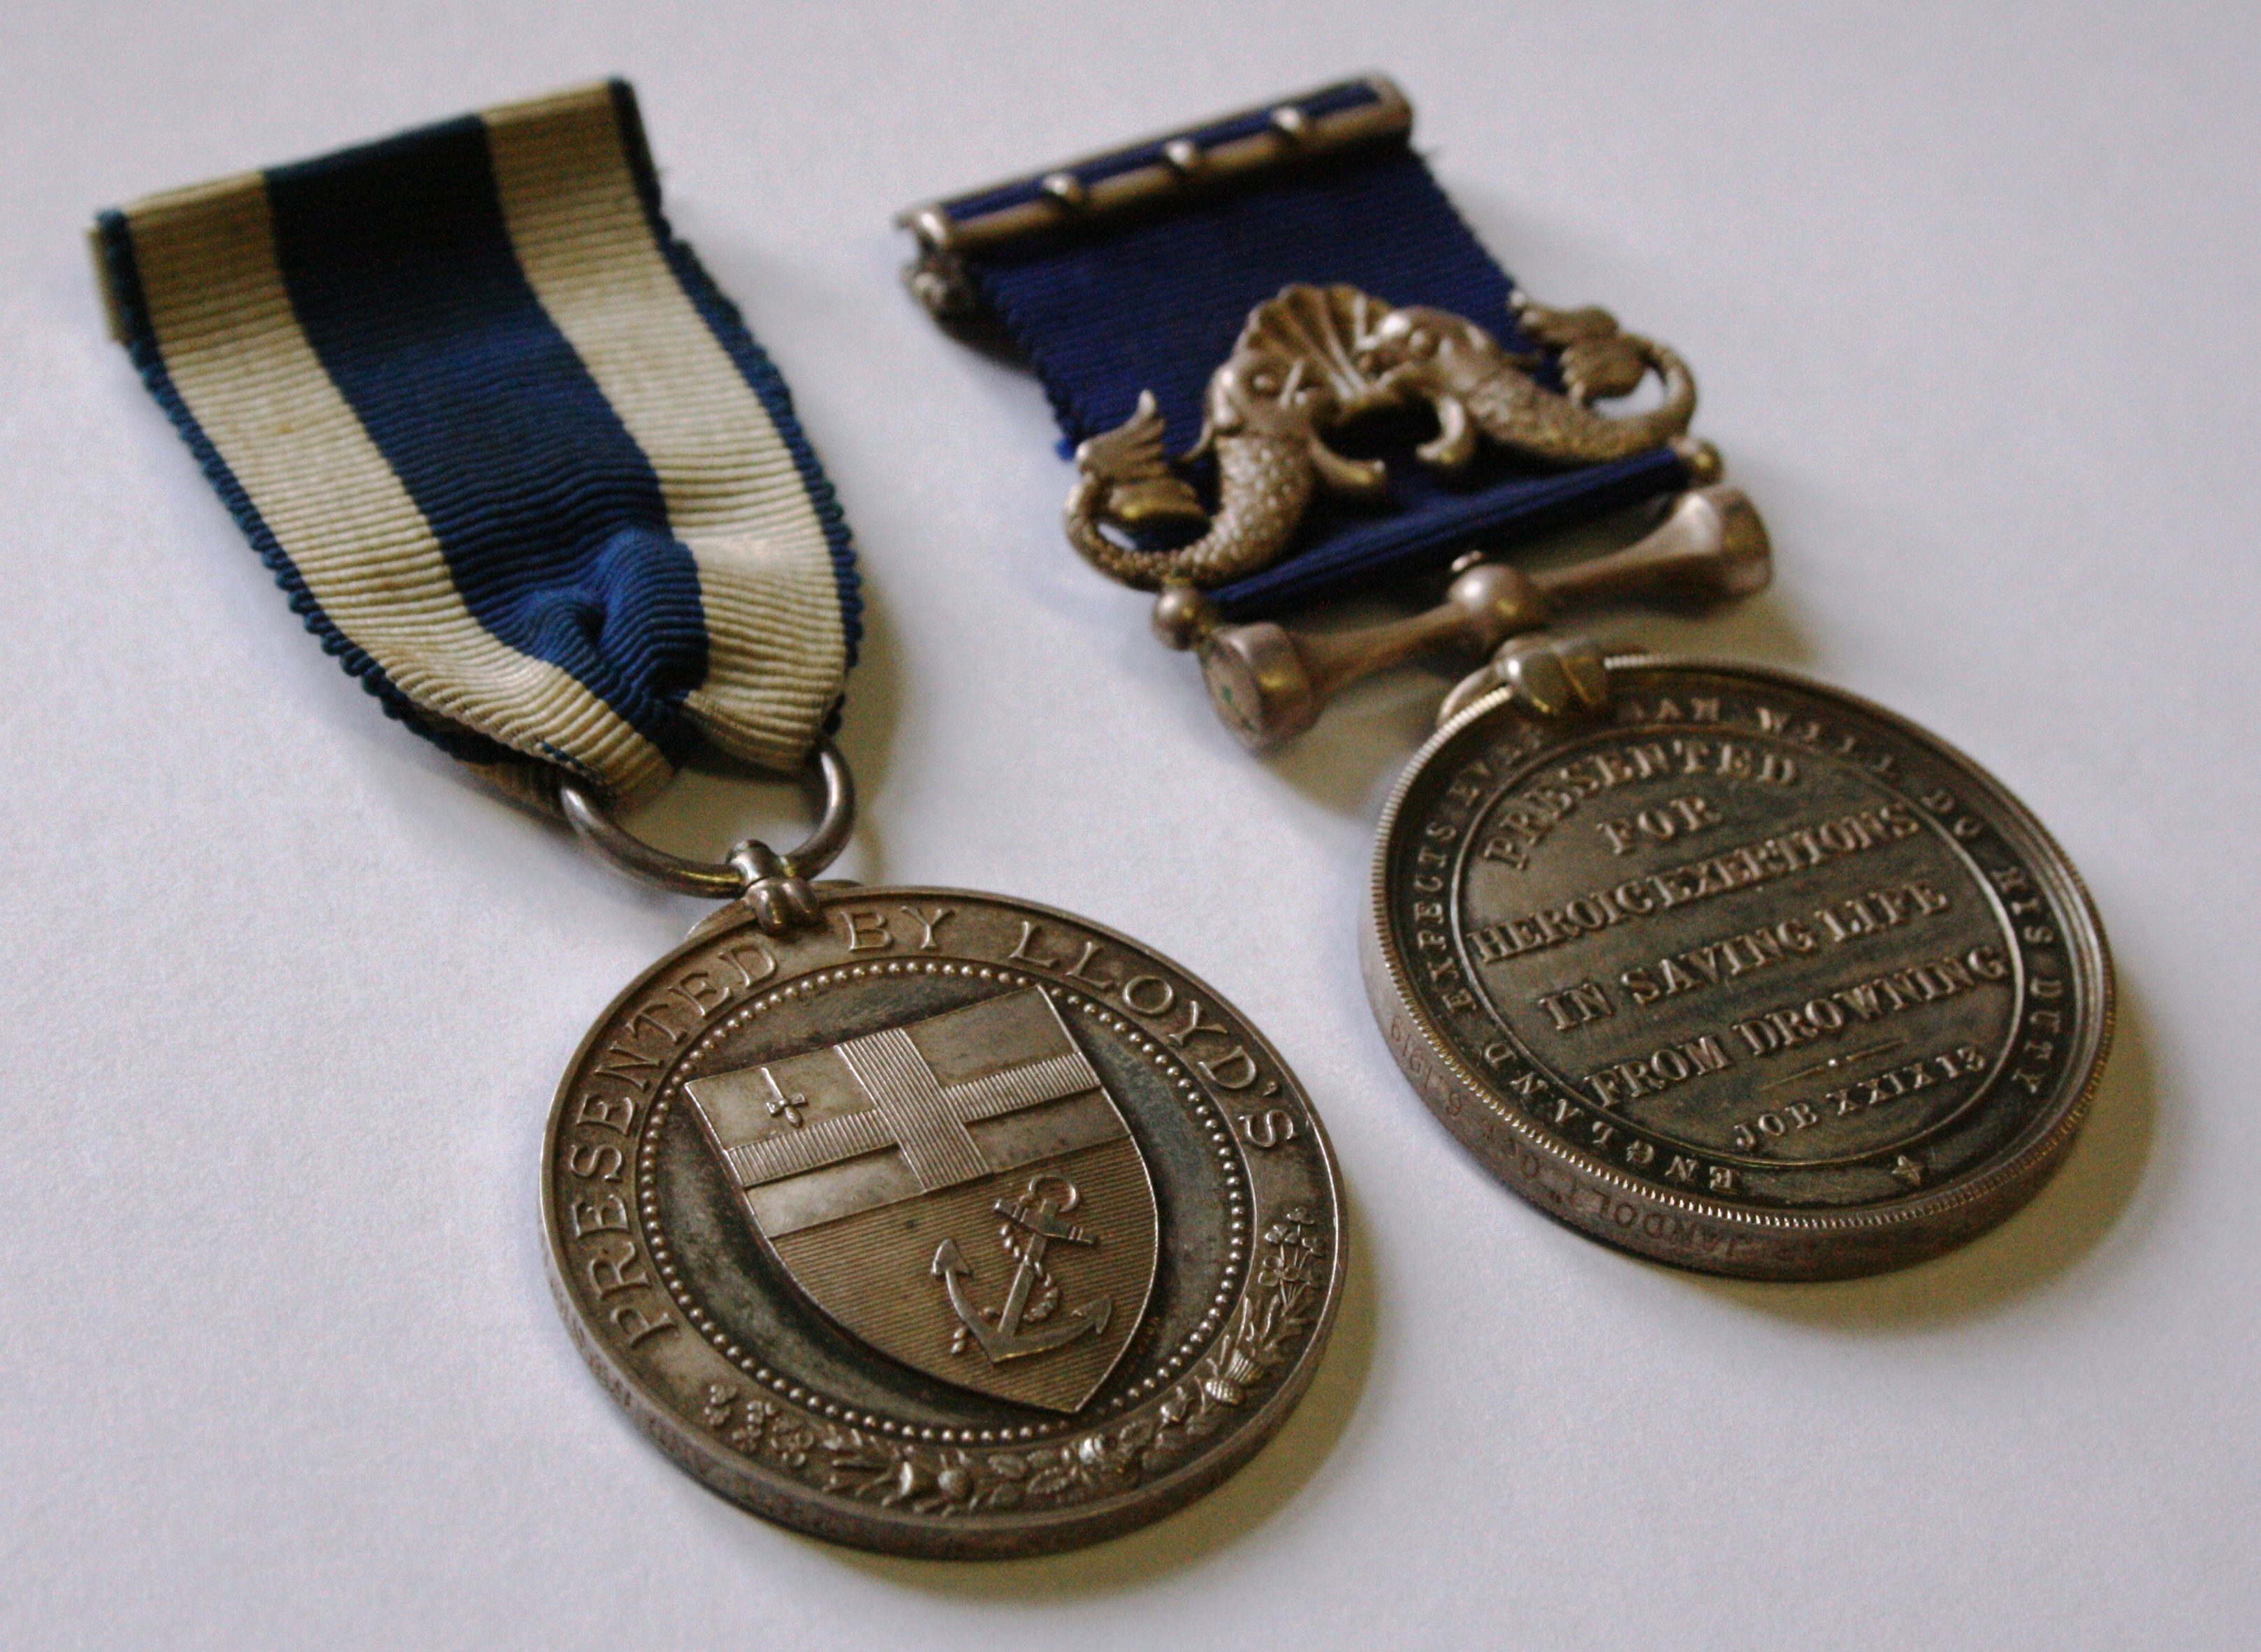 Medals awarded to Maurice Mackay